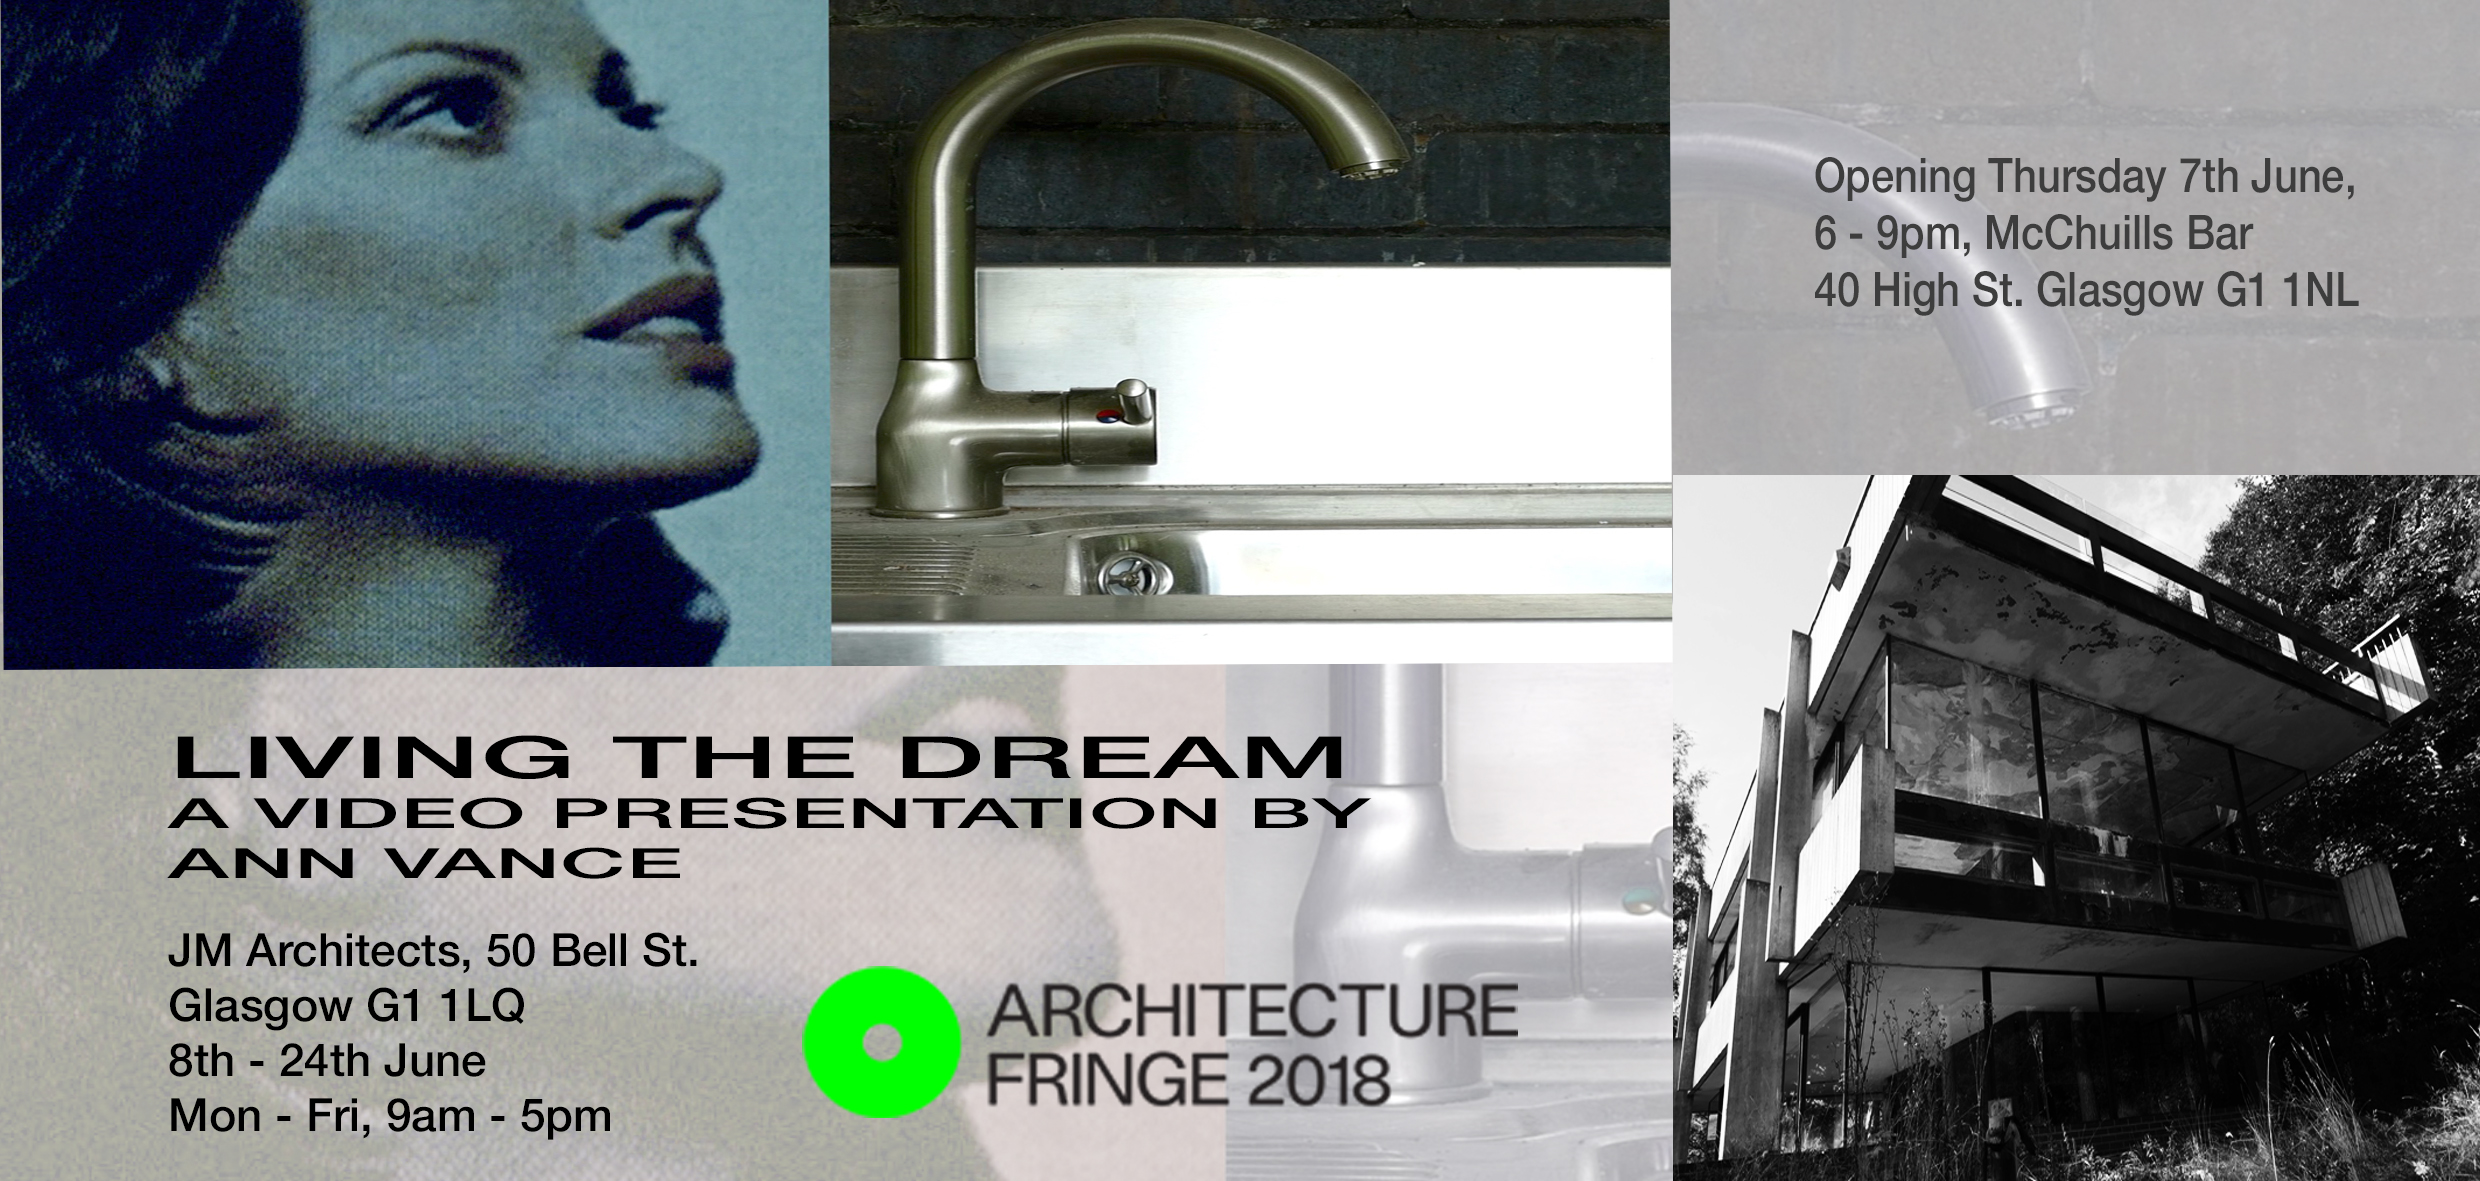 Living The Dream Exhibition by Ann Vance to show at jmarchitects Glasgow